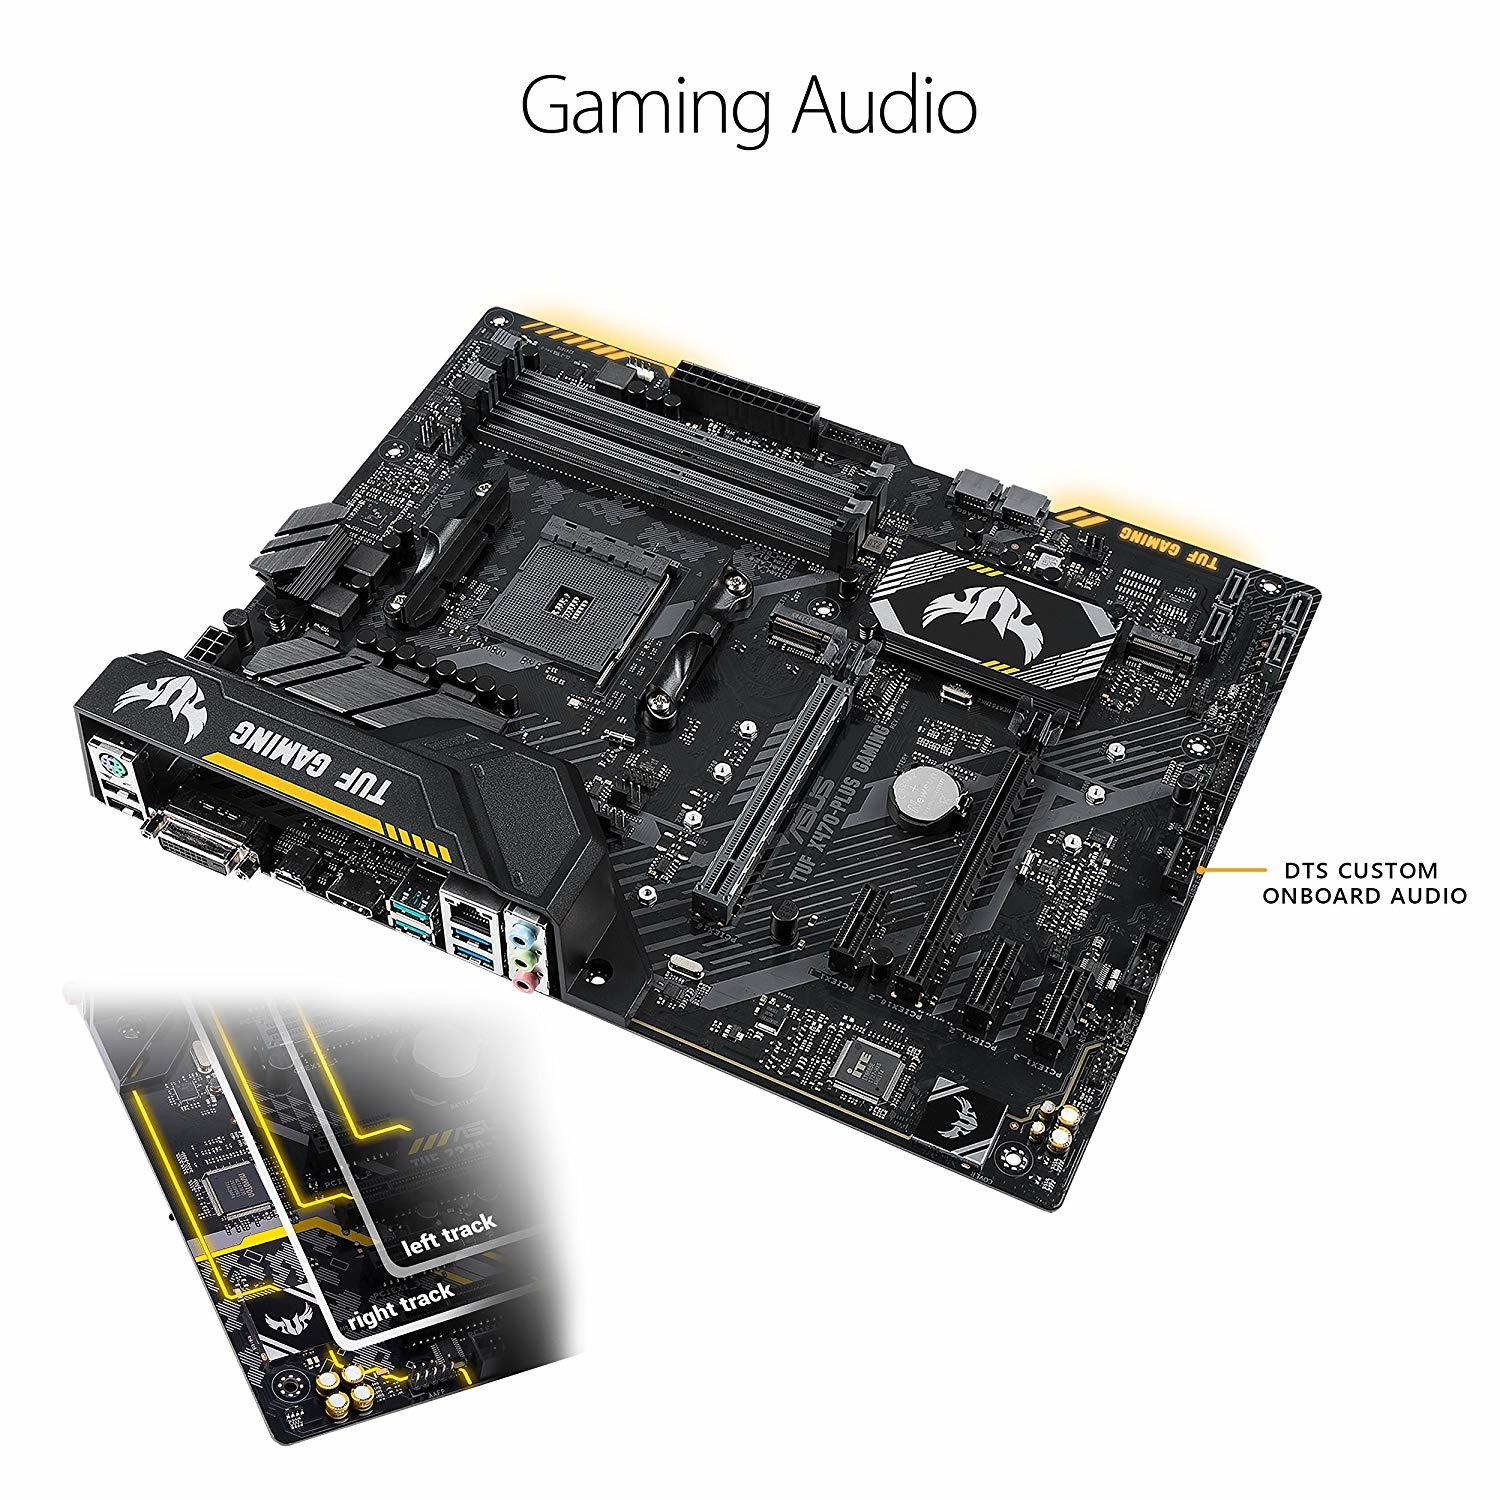 Asus TUF X470-Plus Gaming AMD Ryzen2 AM4 DDR4 Hdmi Dvi M.2 Atx Motherboard image